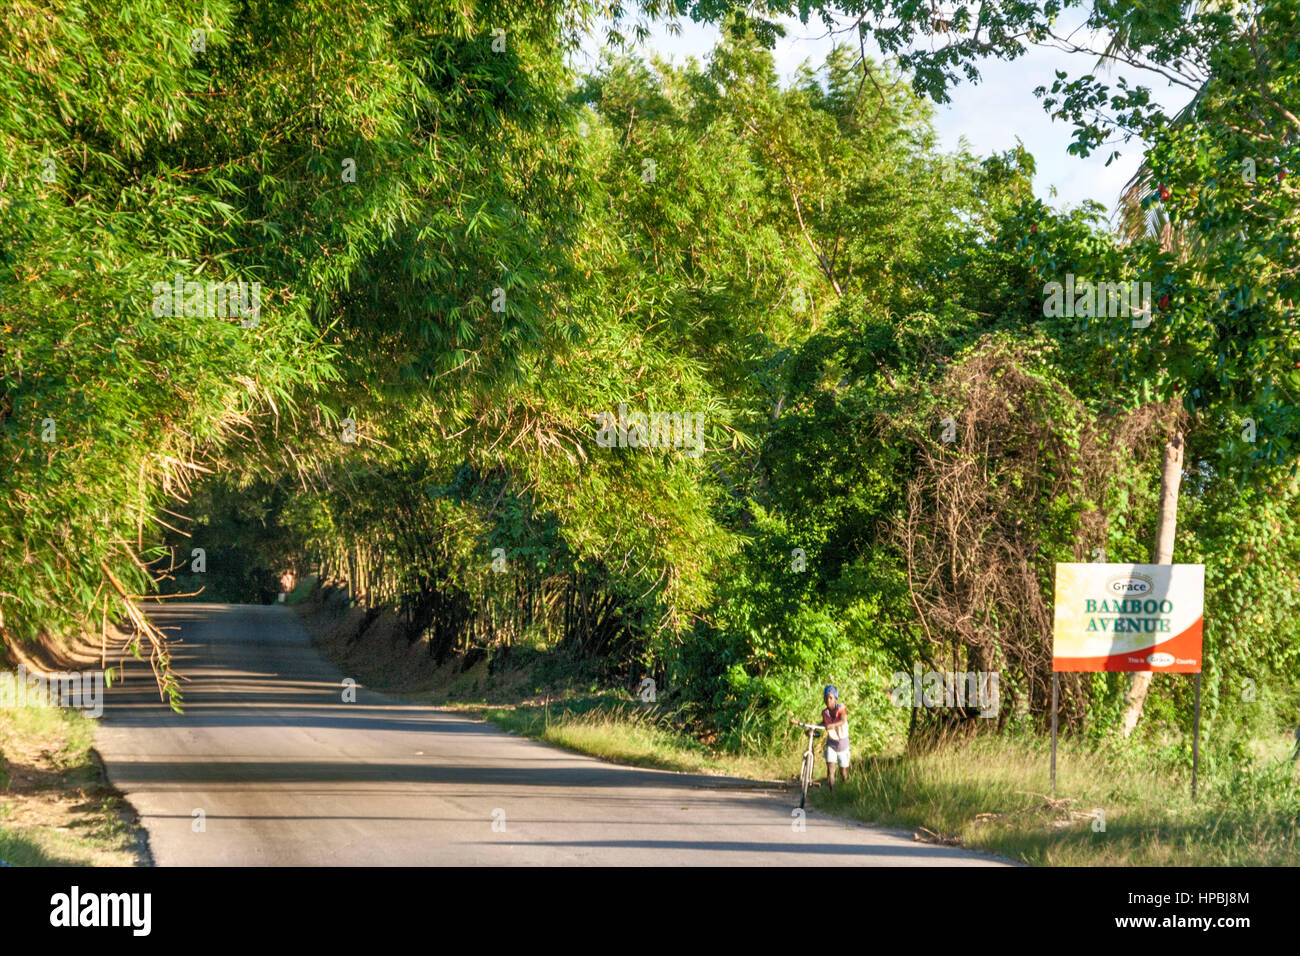 Jamaica St Elisabeth Bamboo Avenue 2 1 2 miles long Bamboo trees overgrowing the road like a tunnel Stock Photo